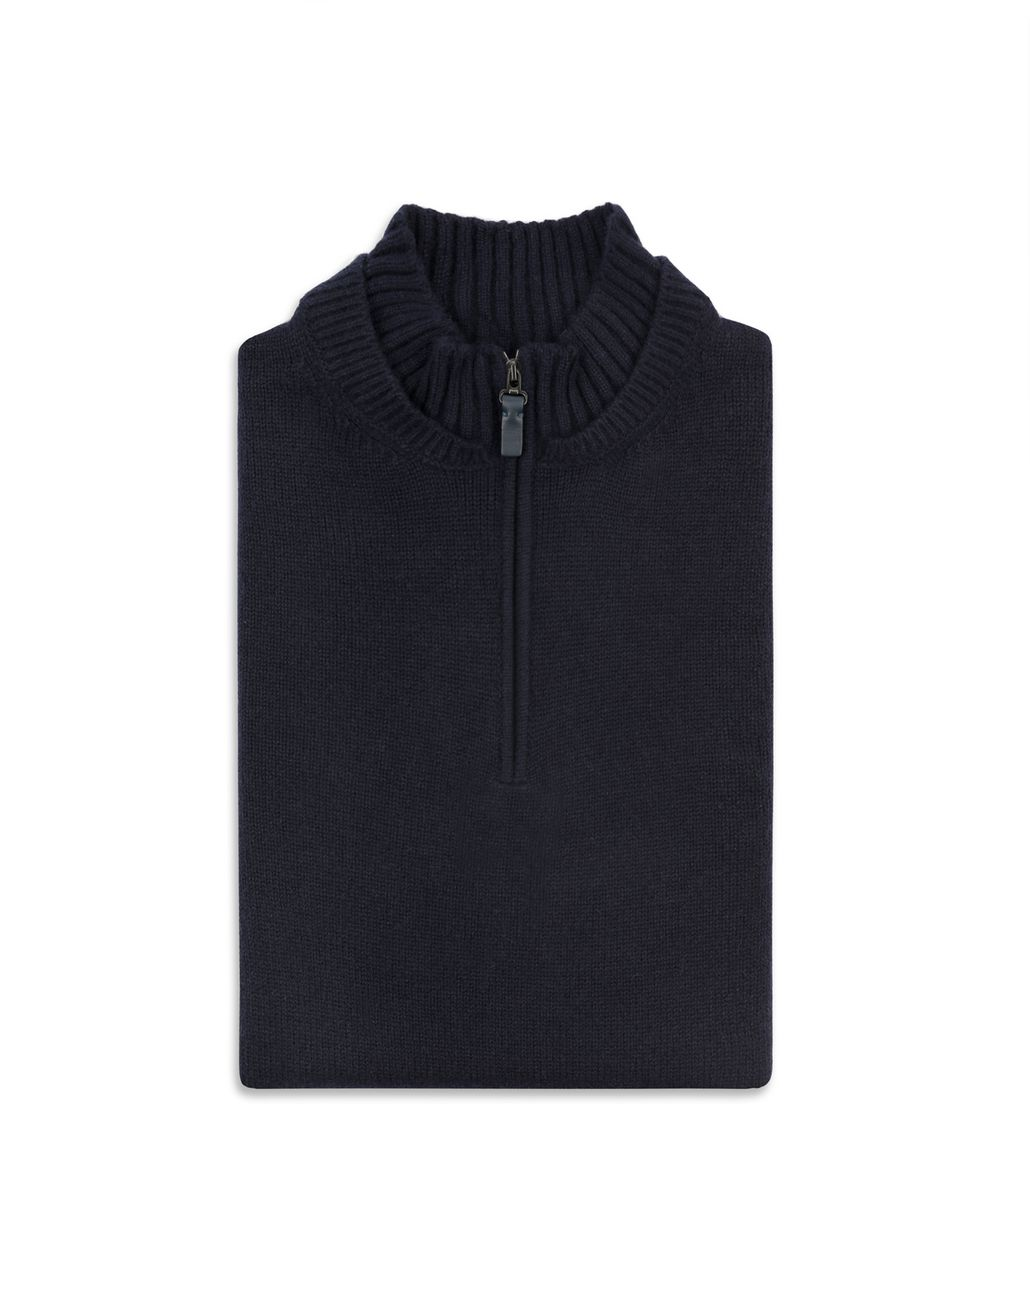 BRIONI Navy Blue Mock Neck Zipped Sweater Knitwear [*** pickupInStoreShippingNotGuaranteed_info ***] e